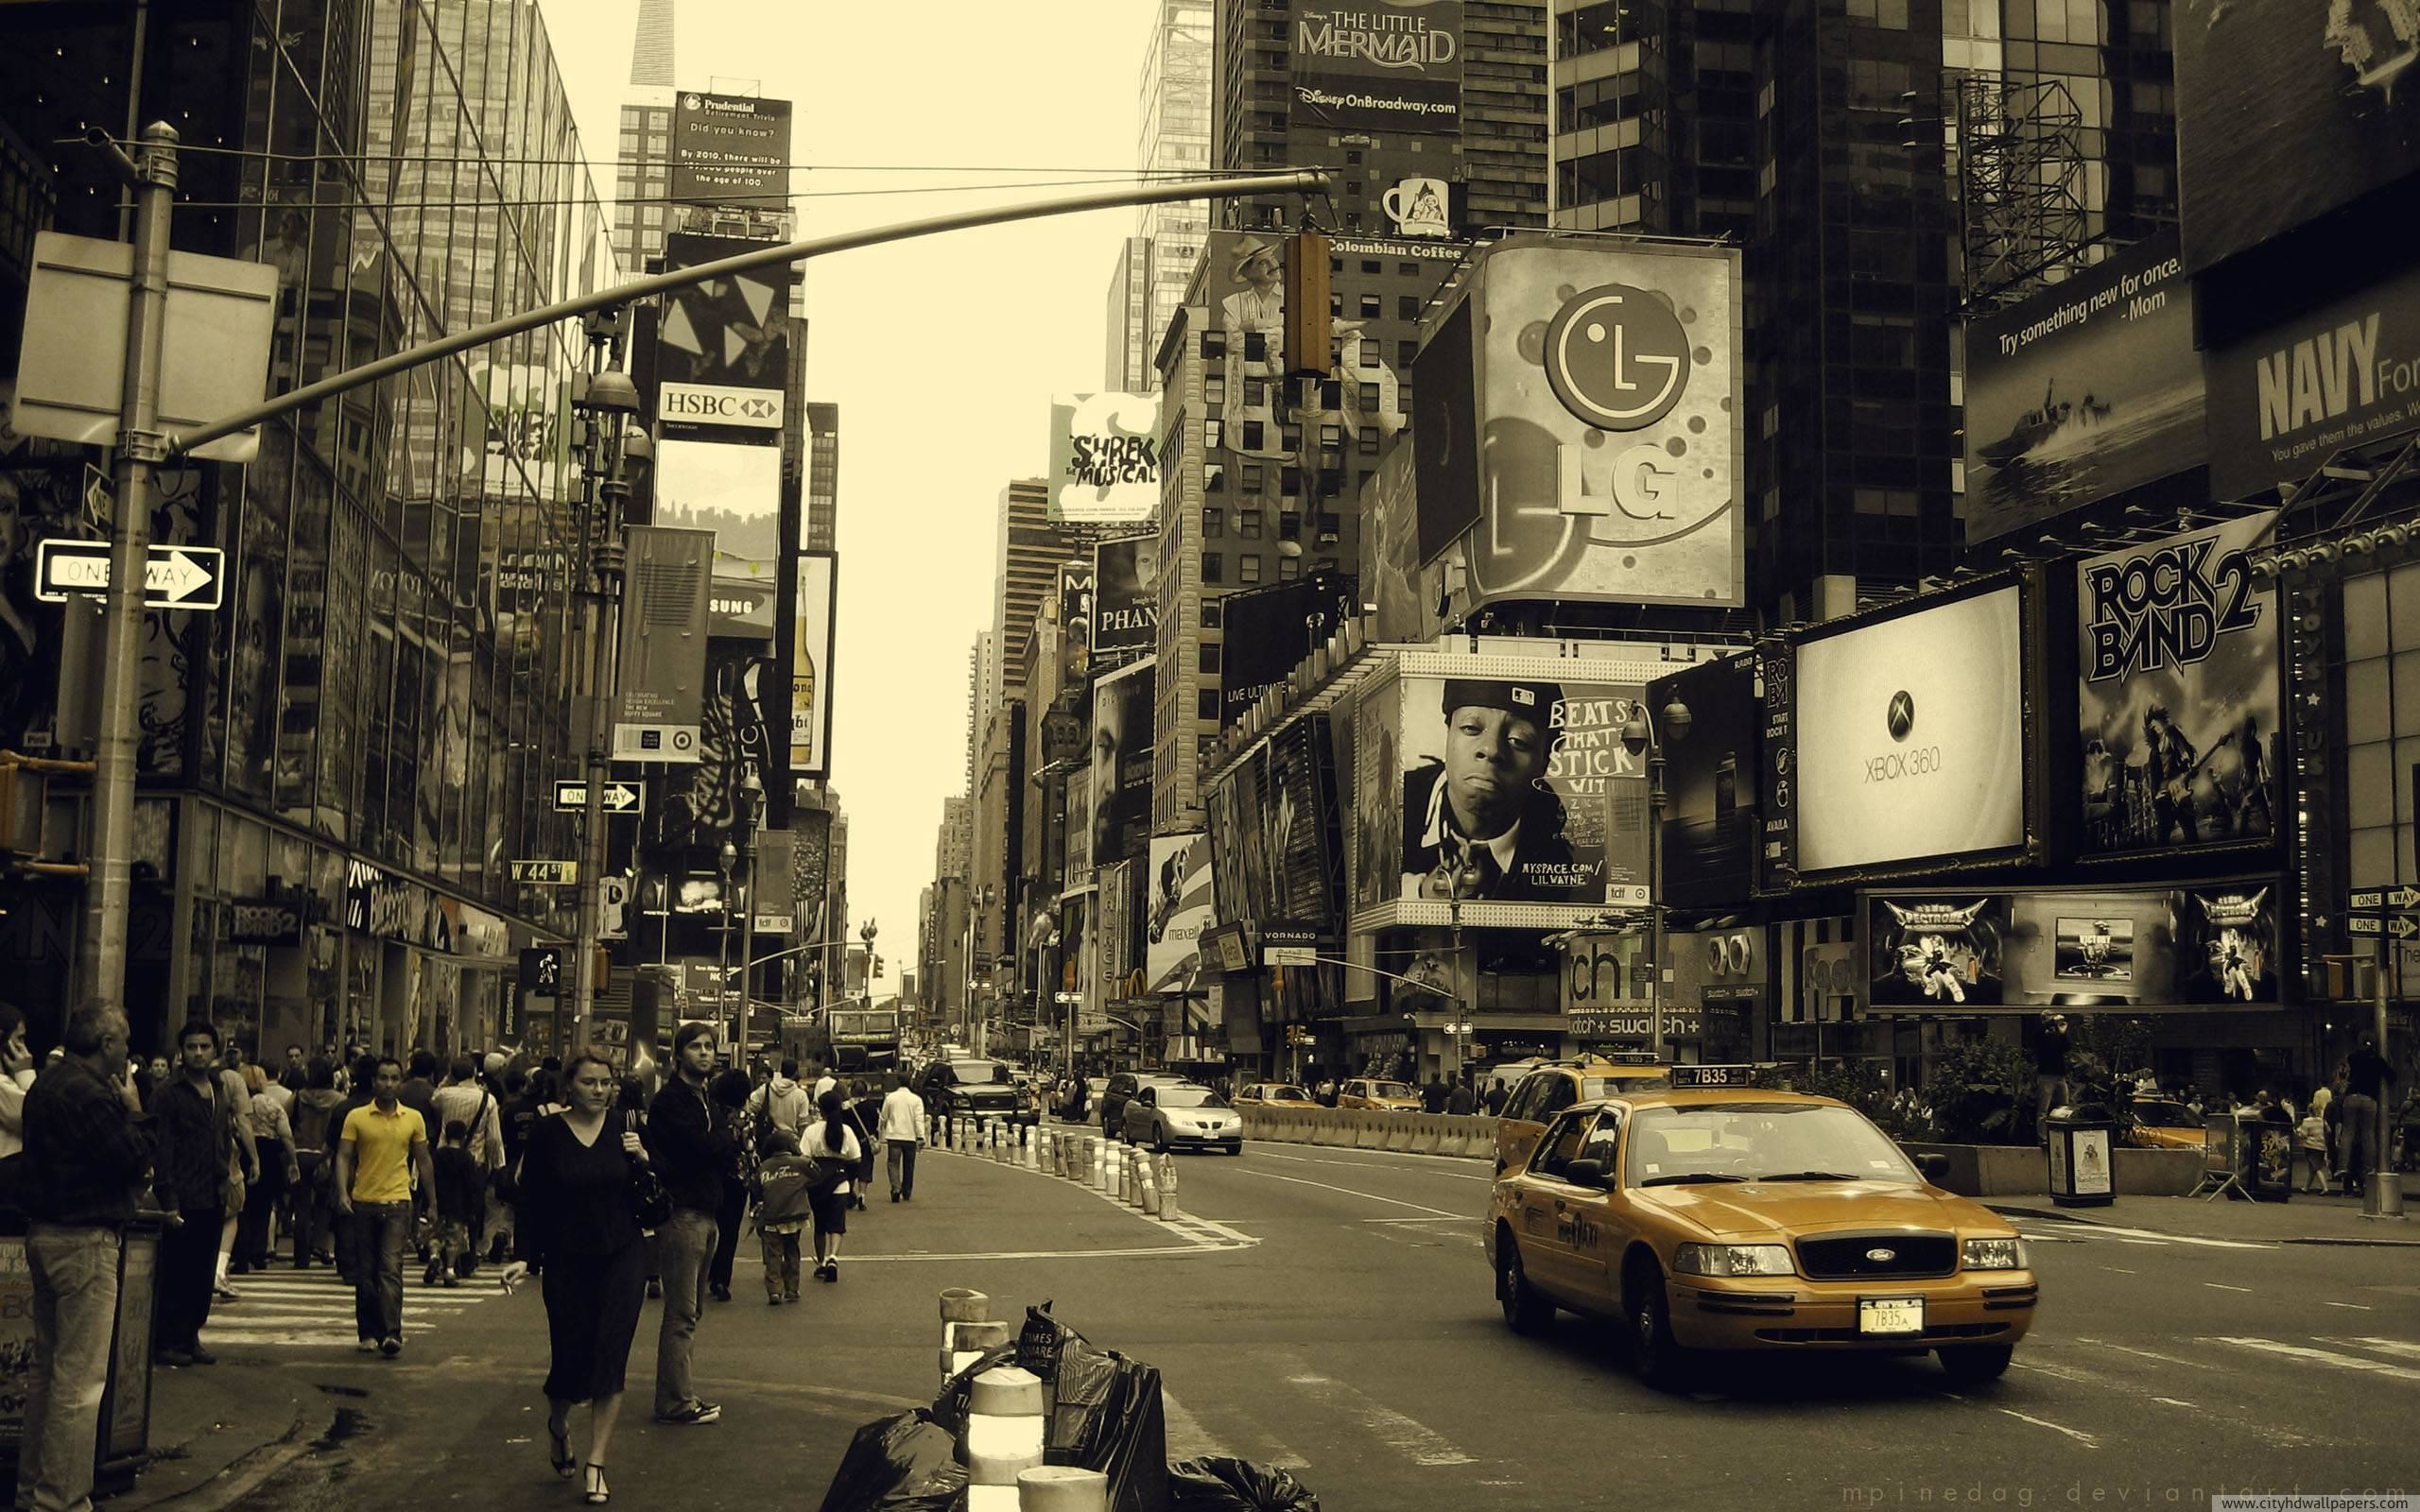 2560x1600 street of new york city in new york usa city hd wallpaper more about .